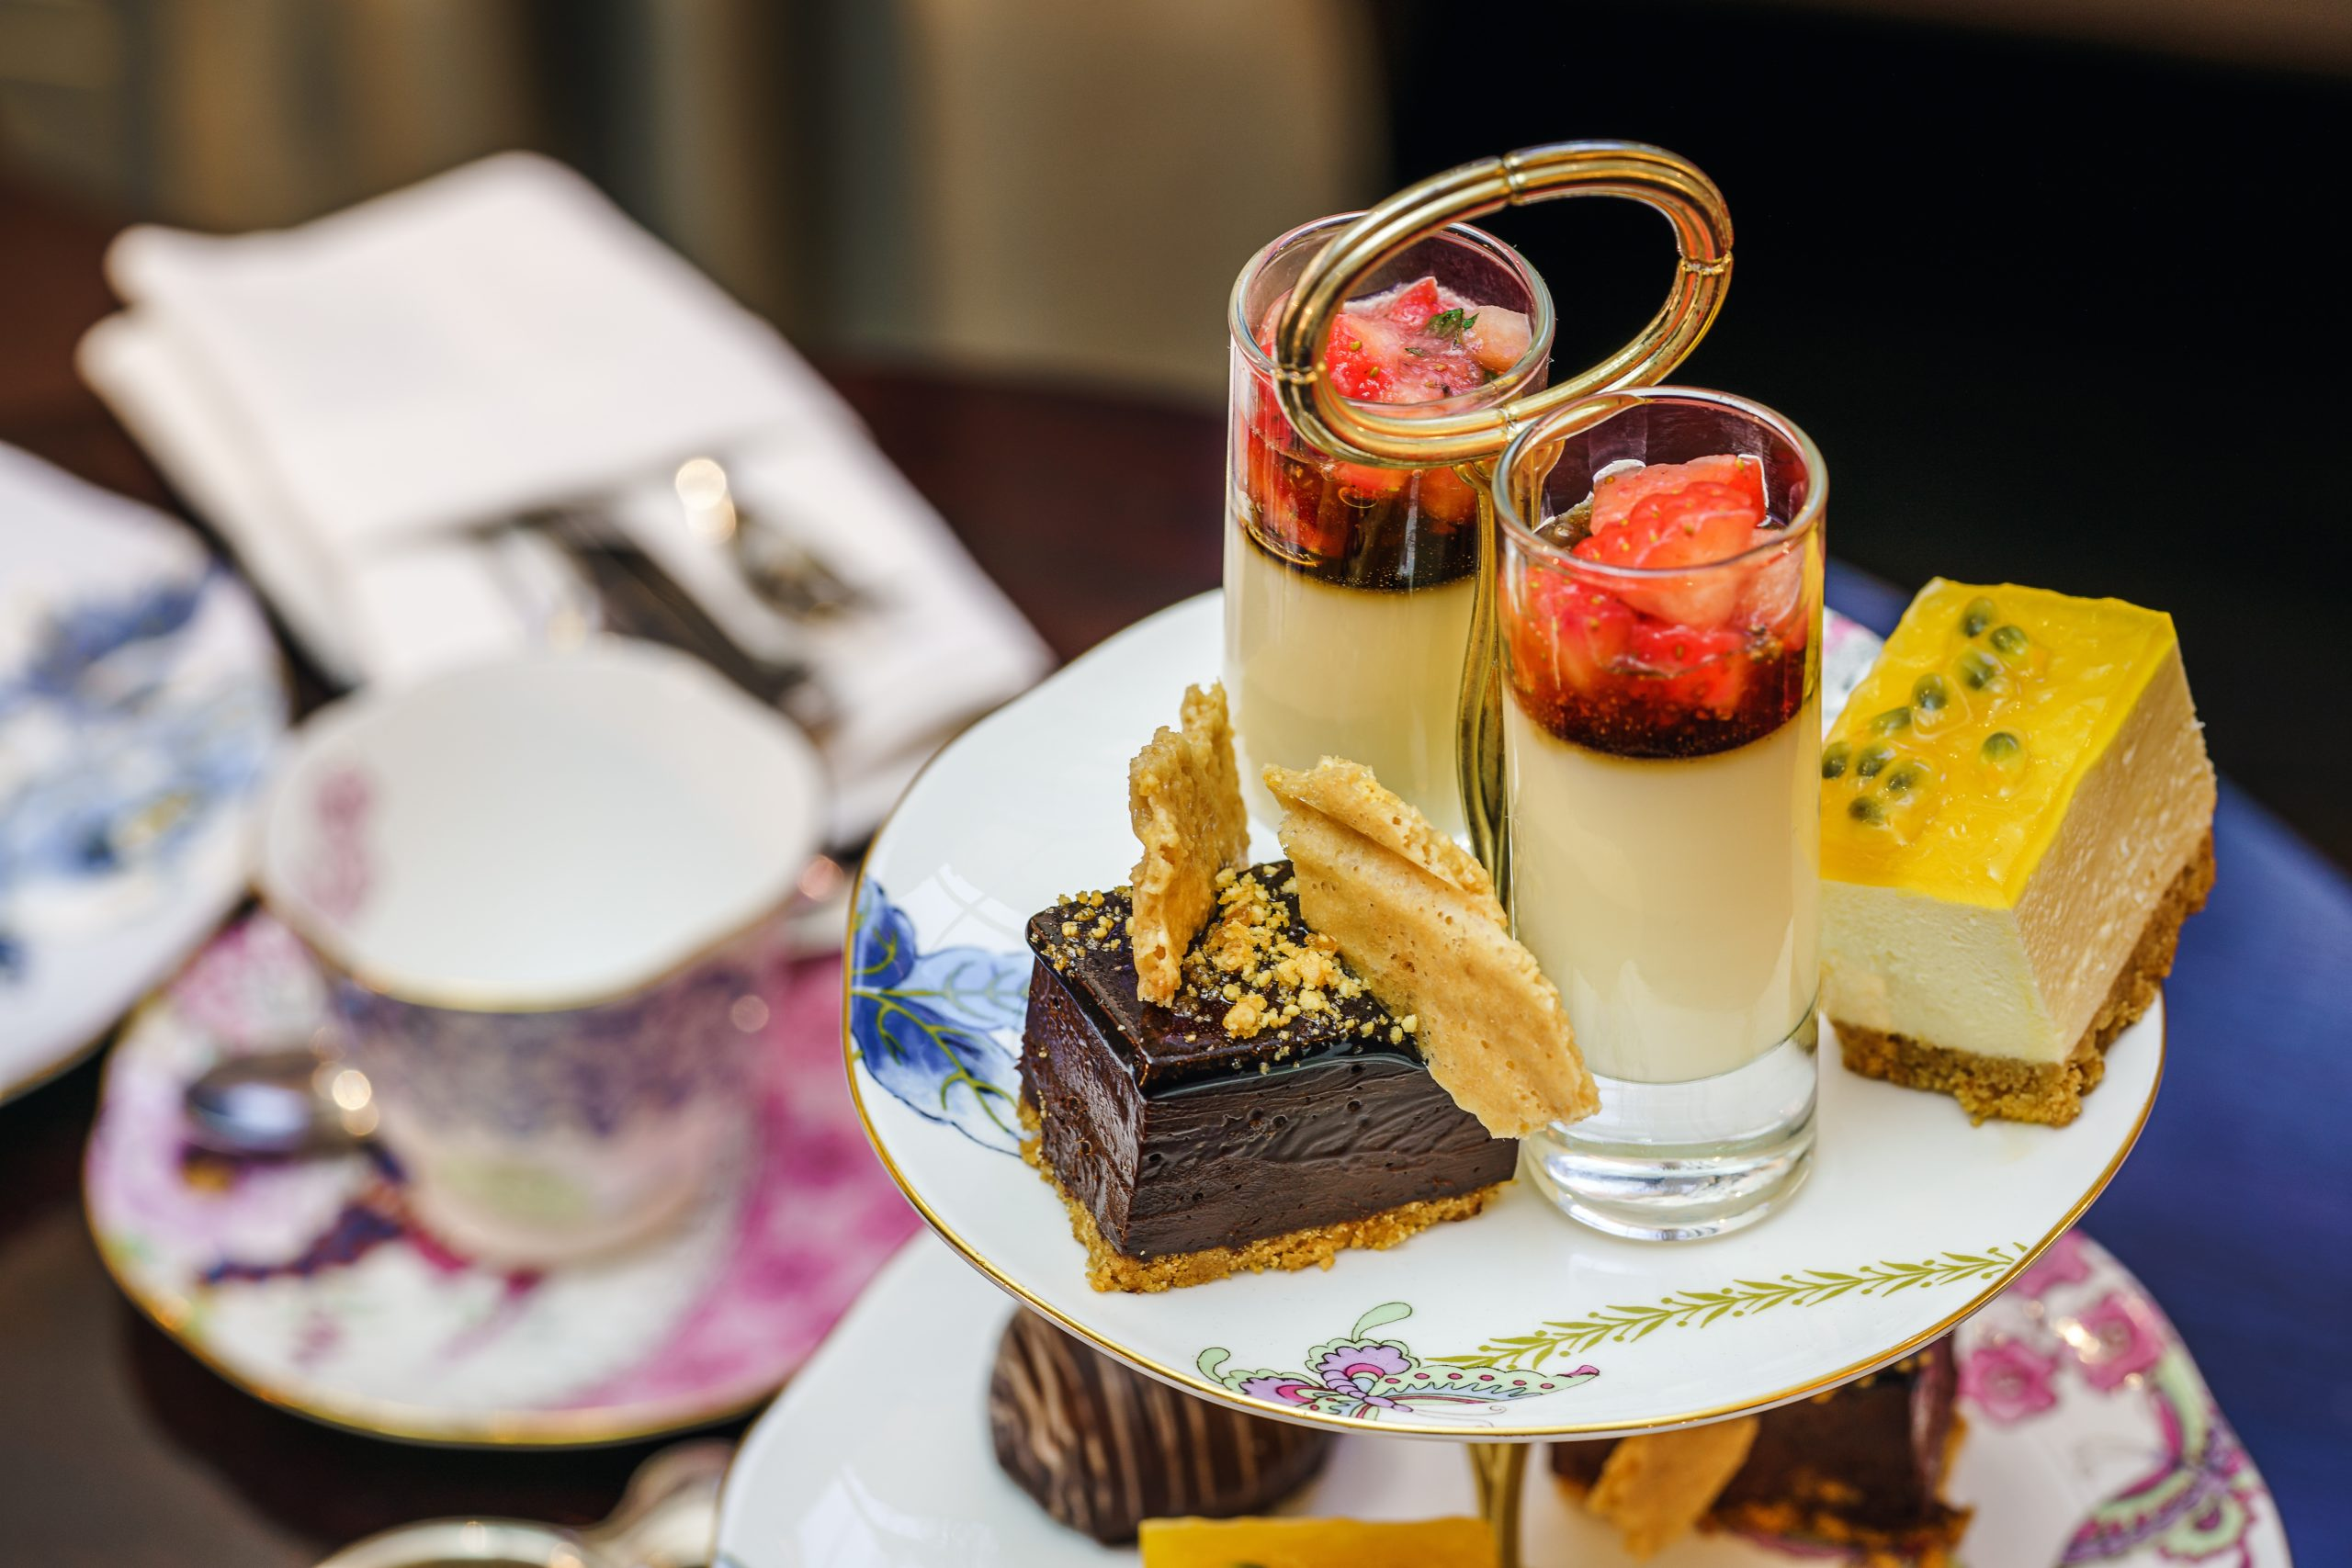 cakes and desserts on a cake stand